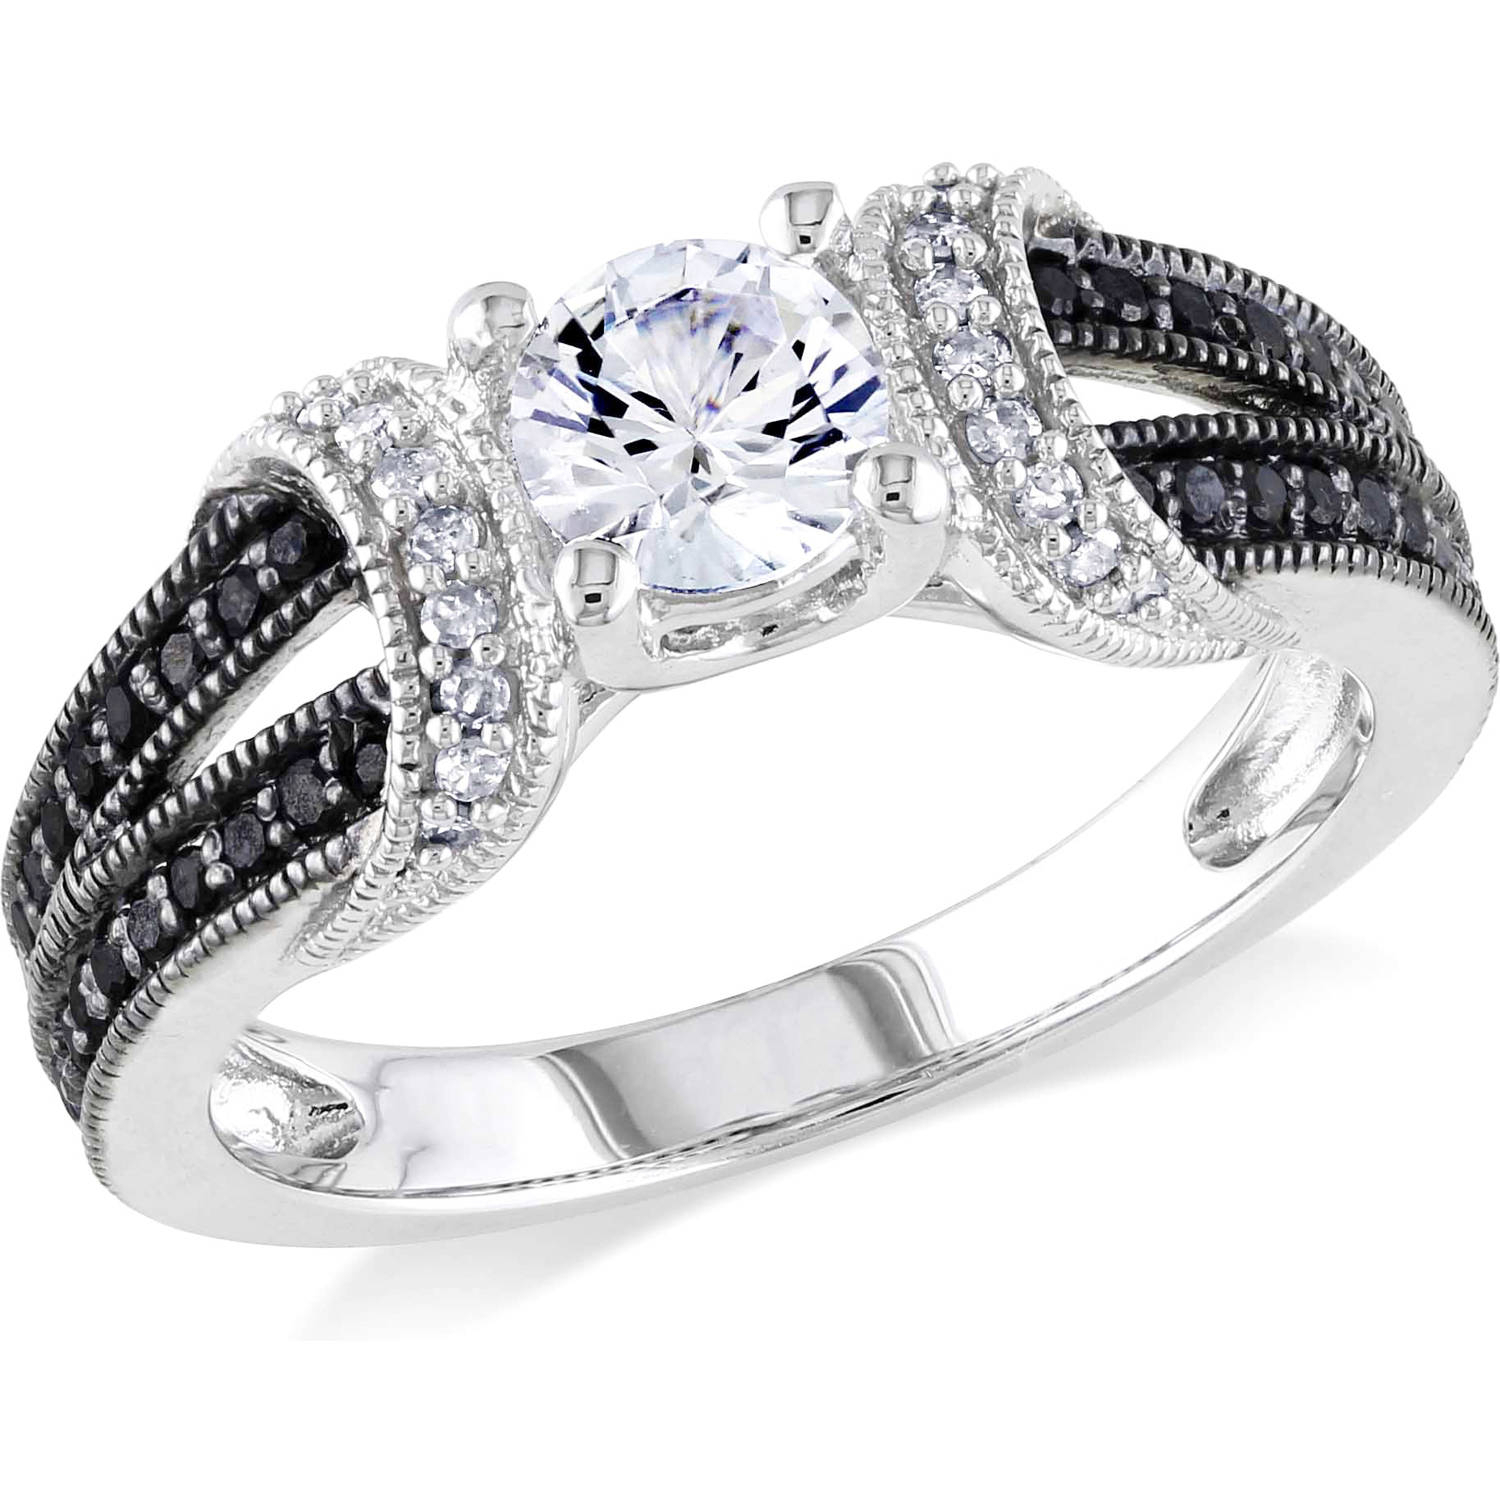 5/8 Carat T.g.w. Created White Sapphire And 1/4 Carat T.w (View 7 of 25)